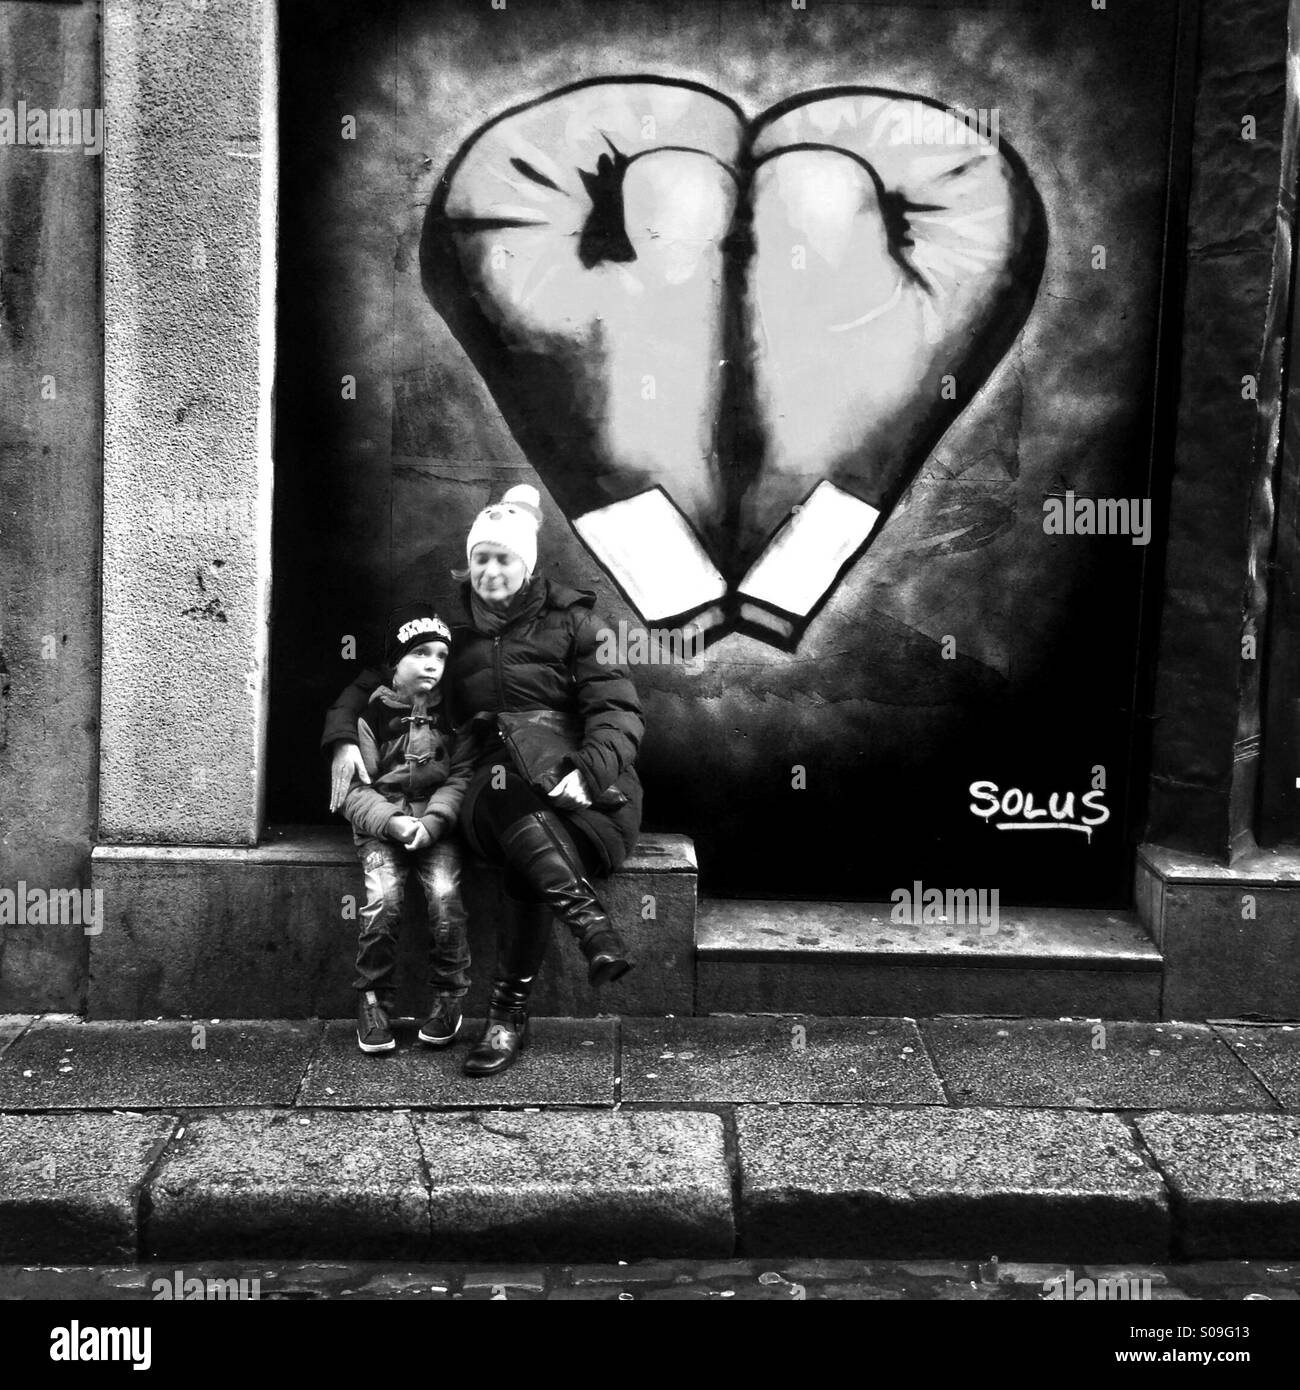 Mum & boy sit in front of graffiti in Dublin - Stock Image